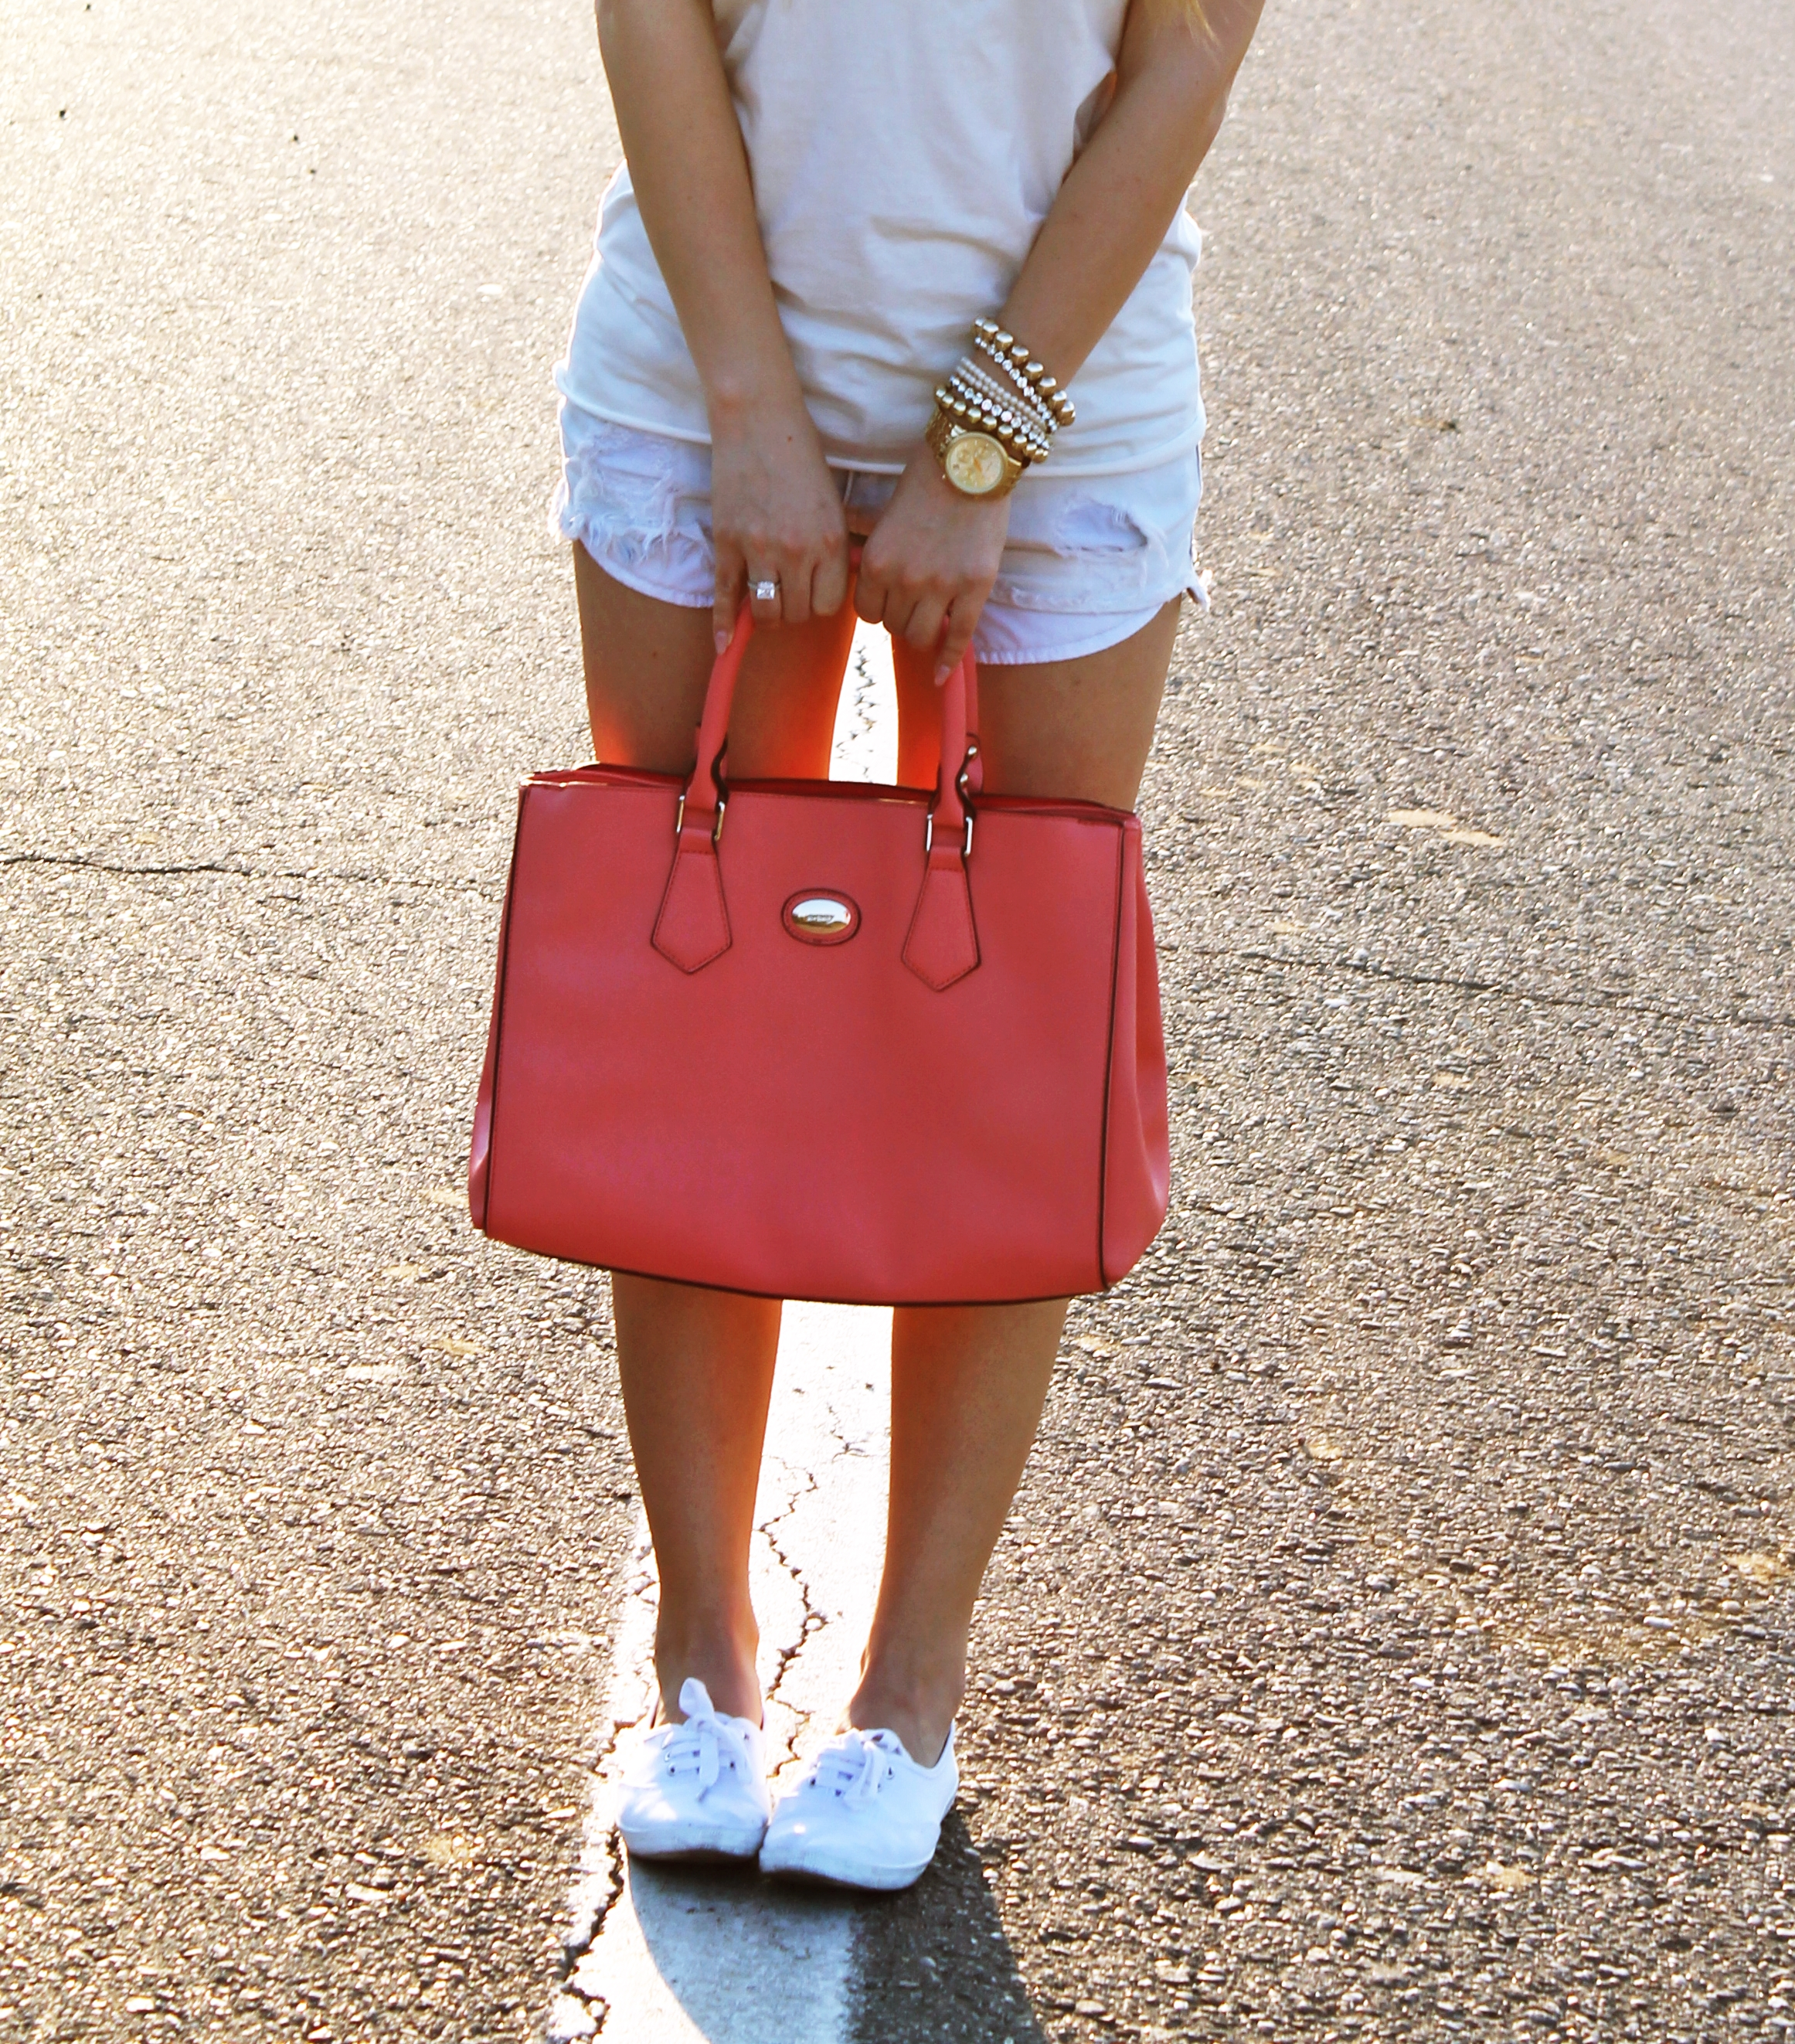 summer, outfit, look, feelings, pink bag, street style, shorts, jeans, white, top, sneakers, andreea design, michael kors, watch, golden, bracelets